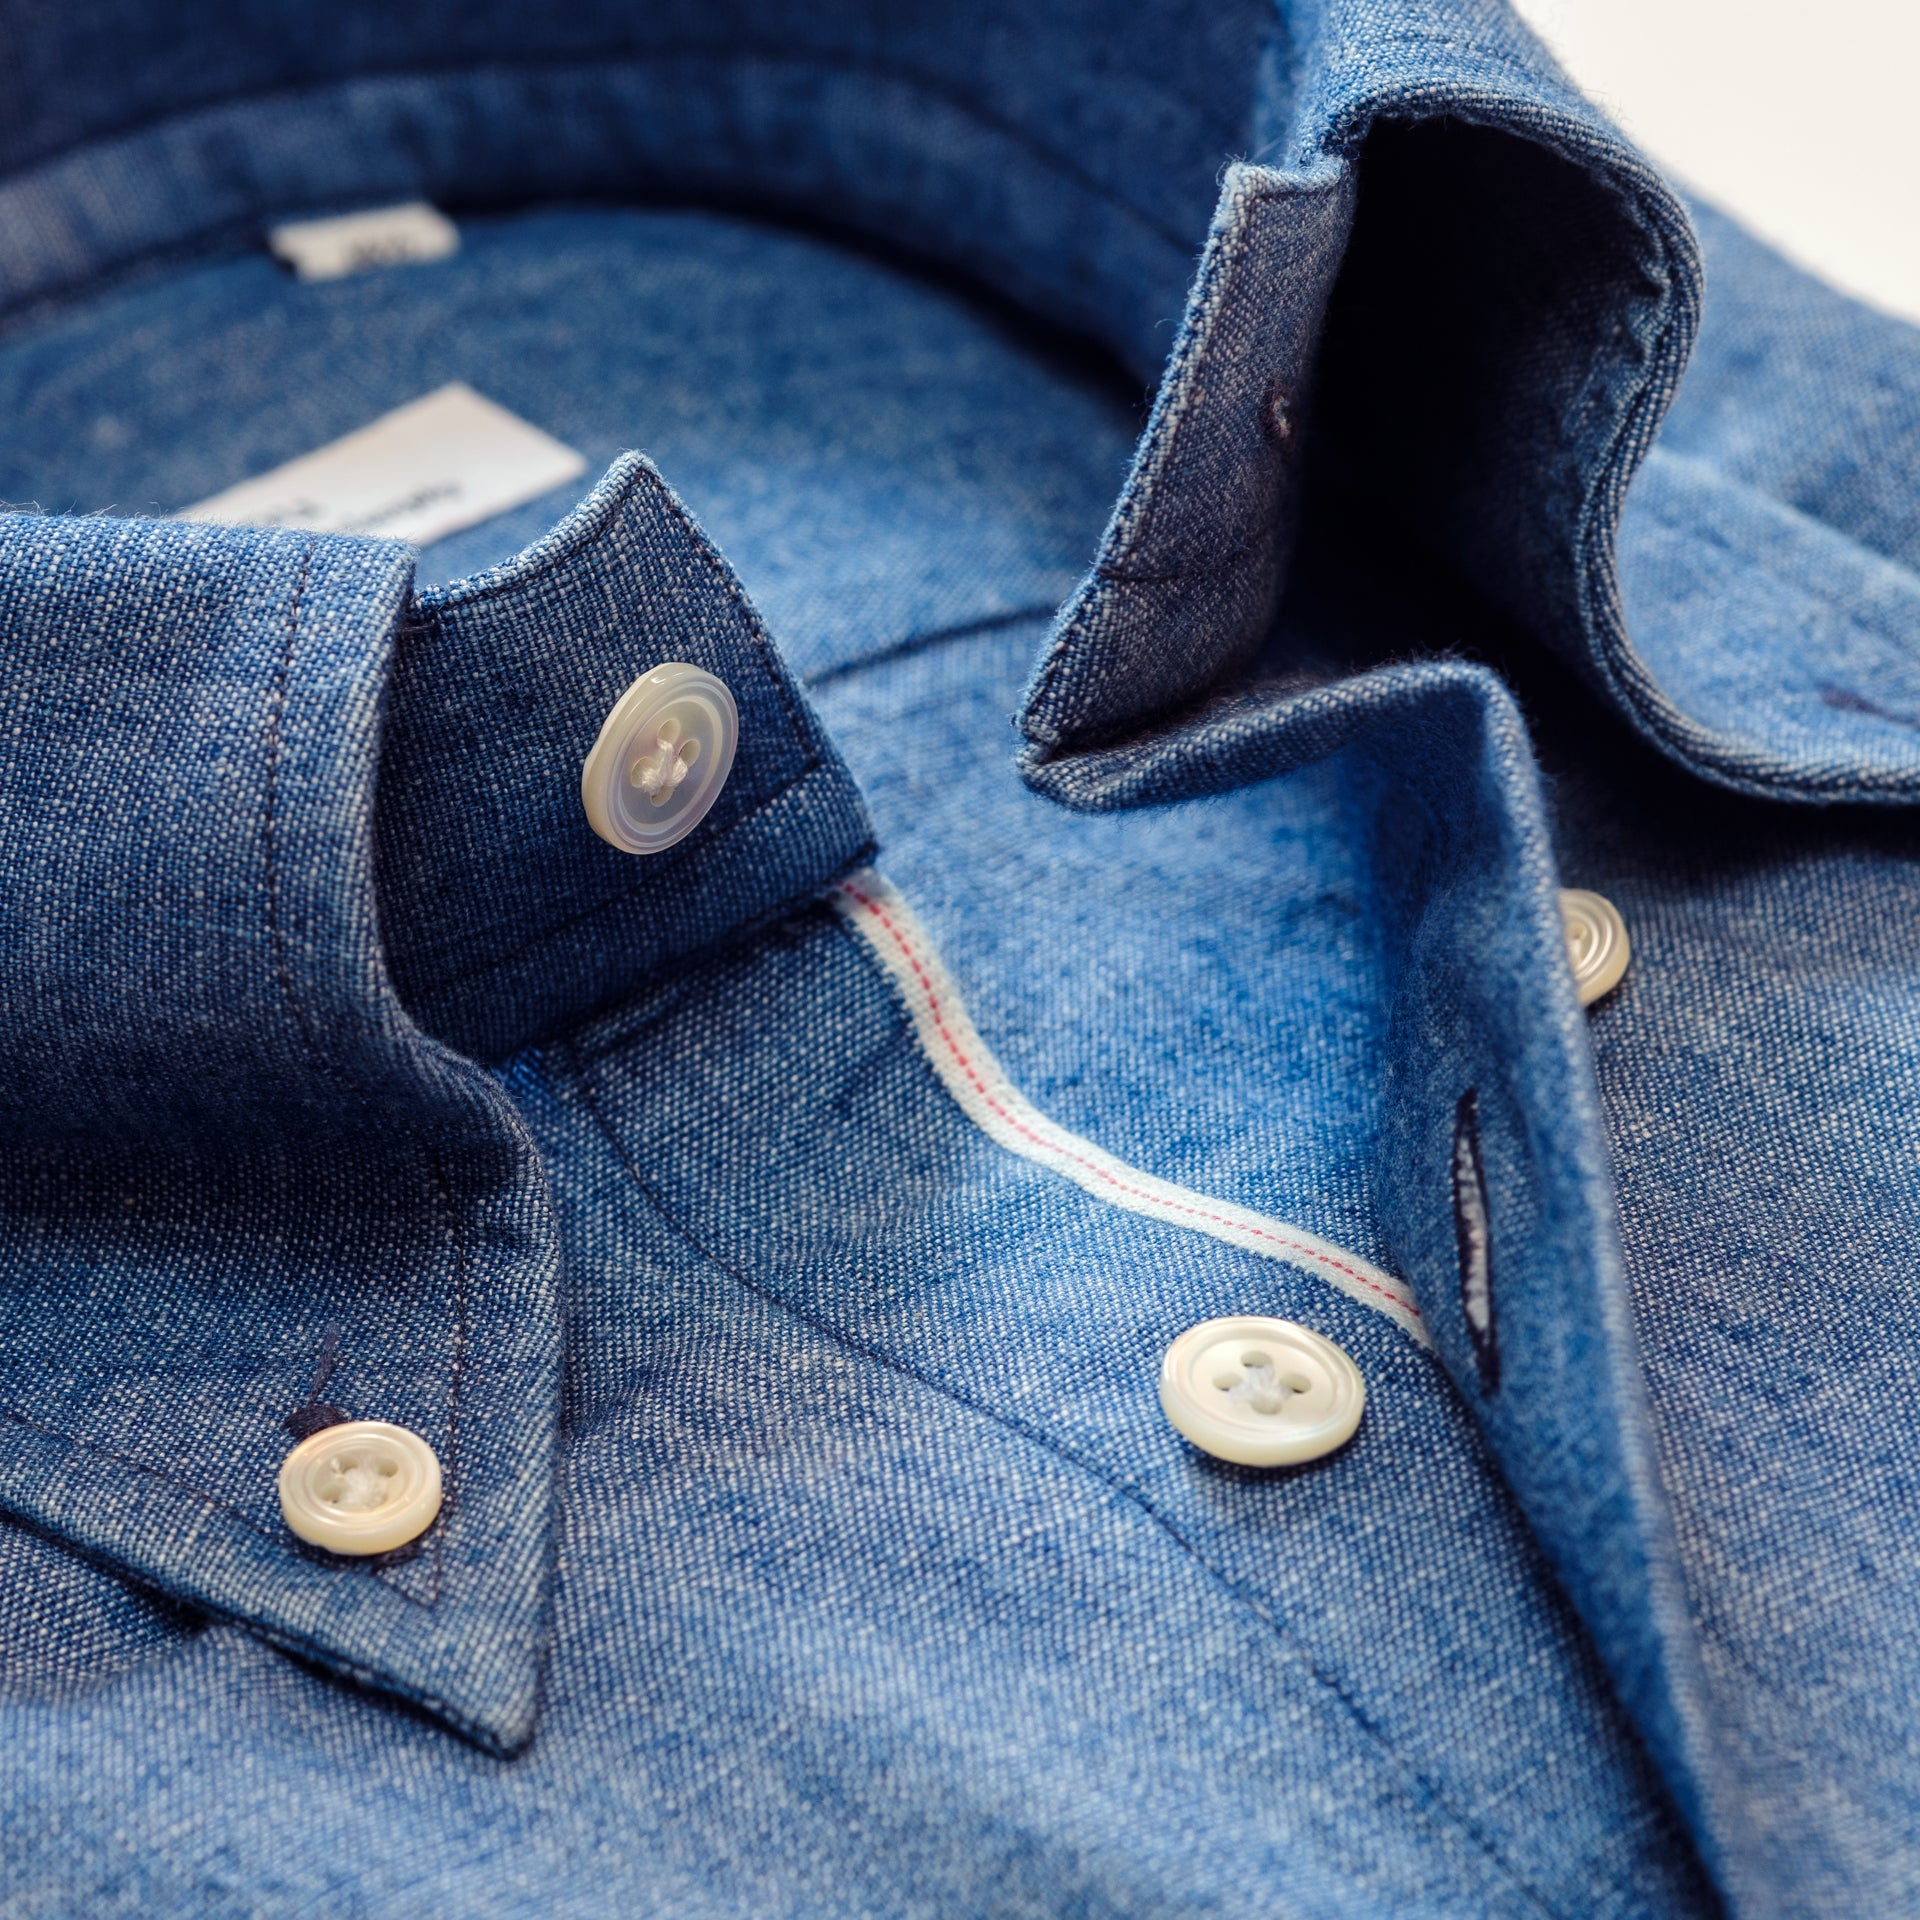 Col boutonné en denim selvedge